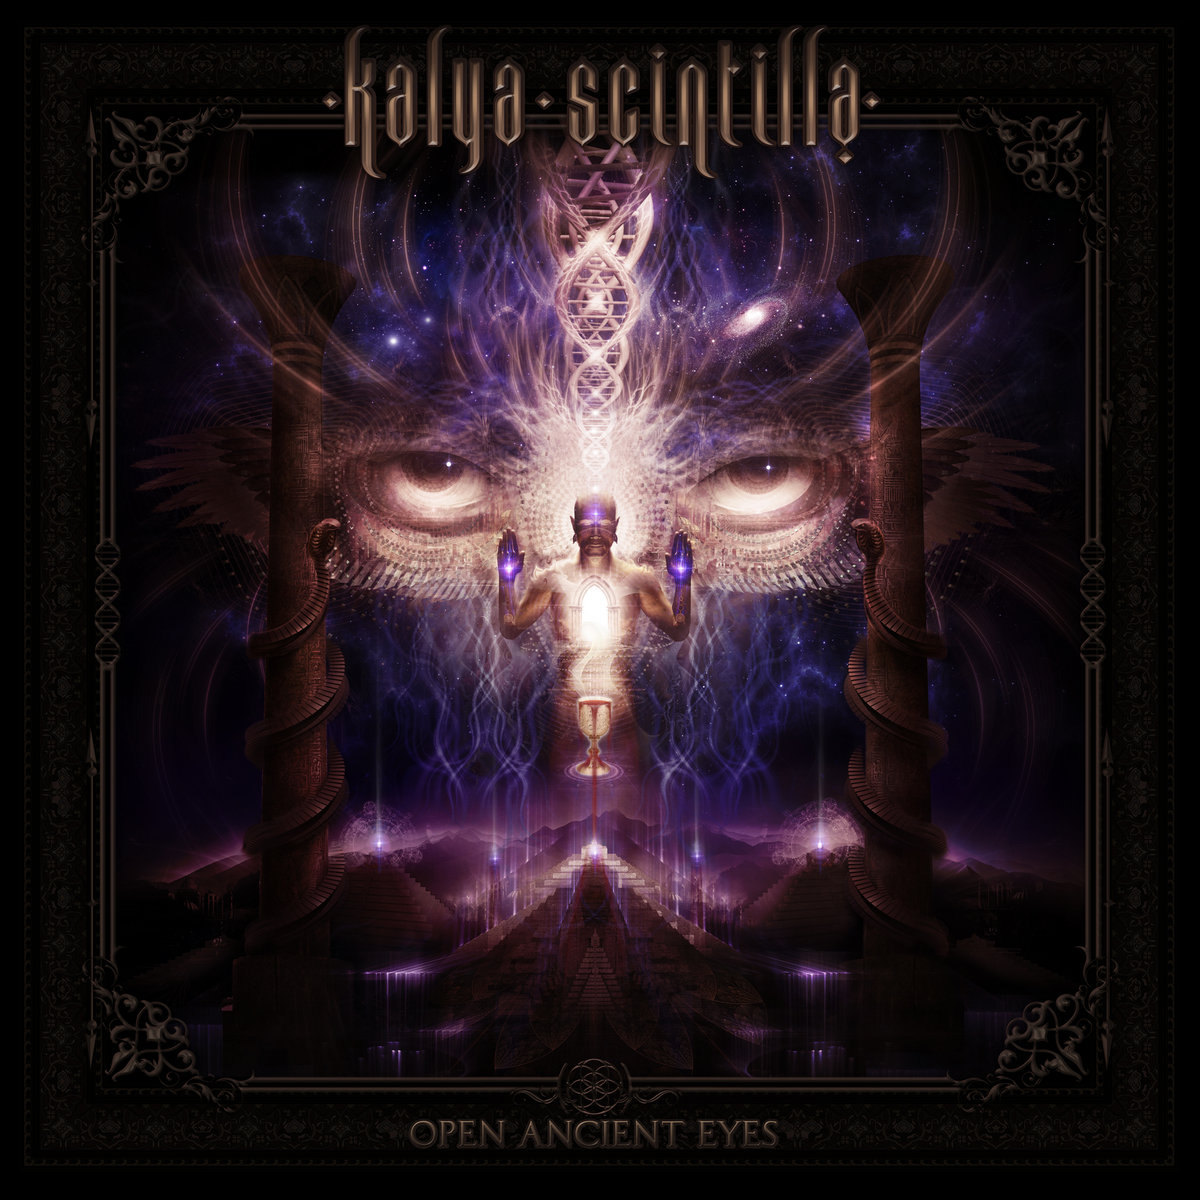 Kalya Scintilla - Evocation @ 'Open Ancient Eyes' album (432hz, electronic)